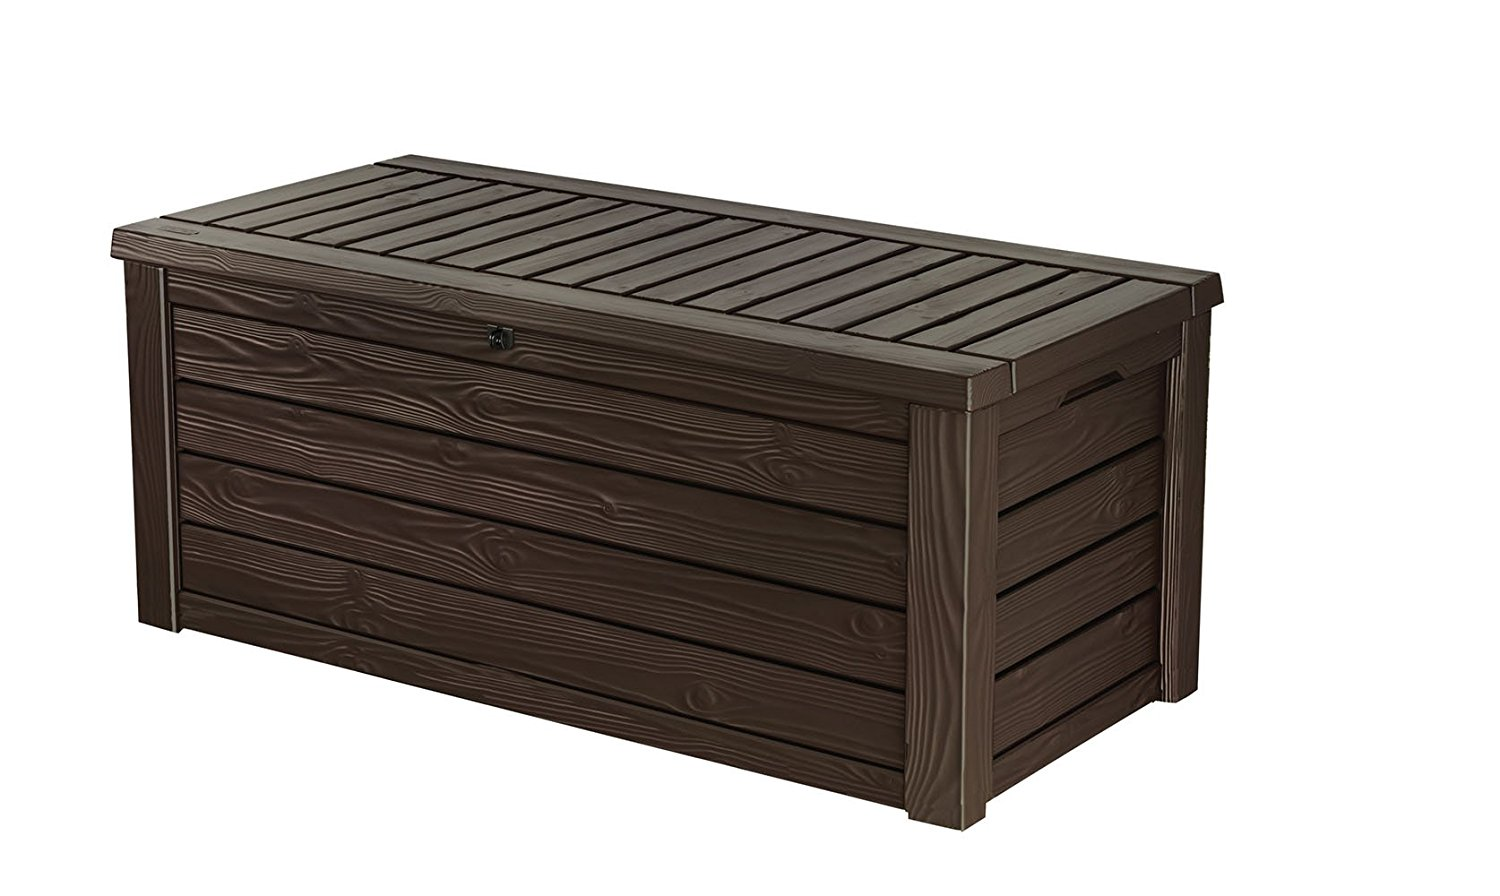 Extra Large Deck Box 150 Gallon | Keter 150 Gallon Deck Box | Watertight Deck Box